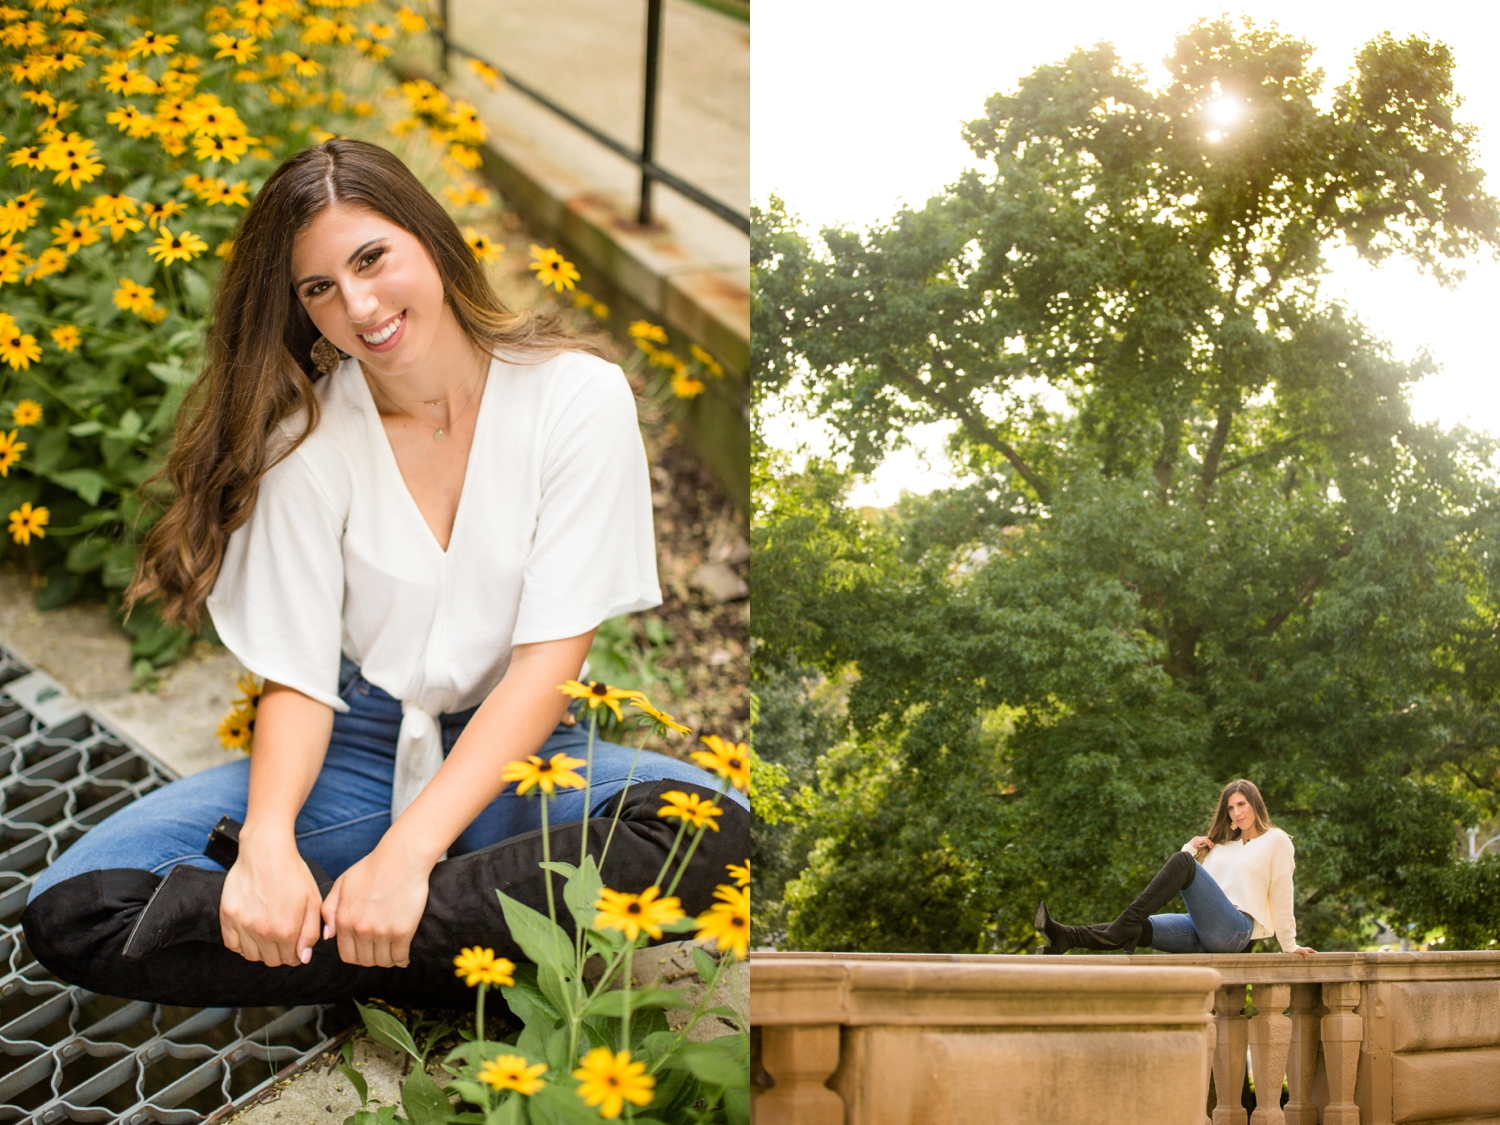 pittsburgh senior photographer, locations for senior pictures pittsburgh, oakland senior photos, cathedral of learning senior photos, phipps senior photos